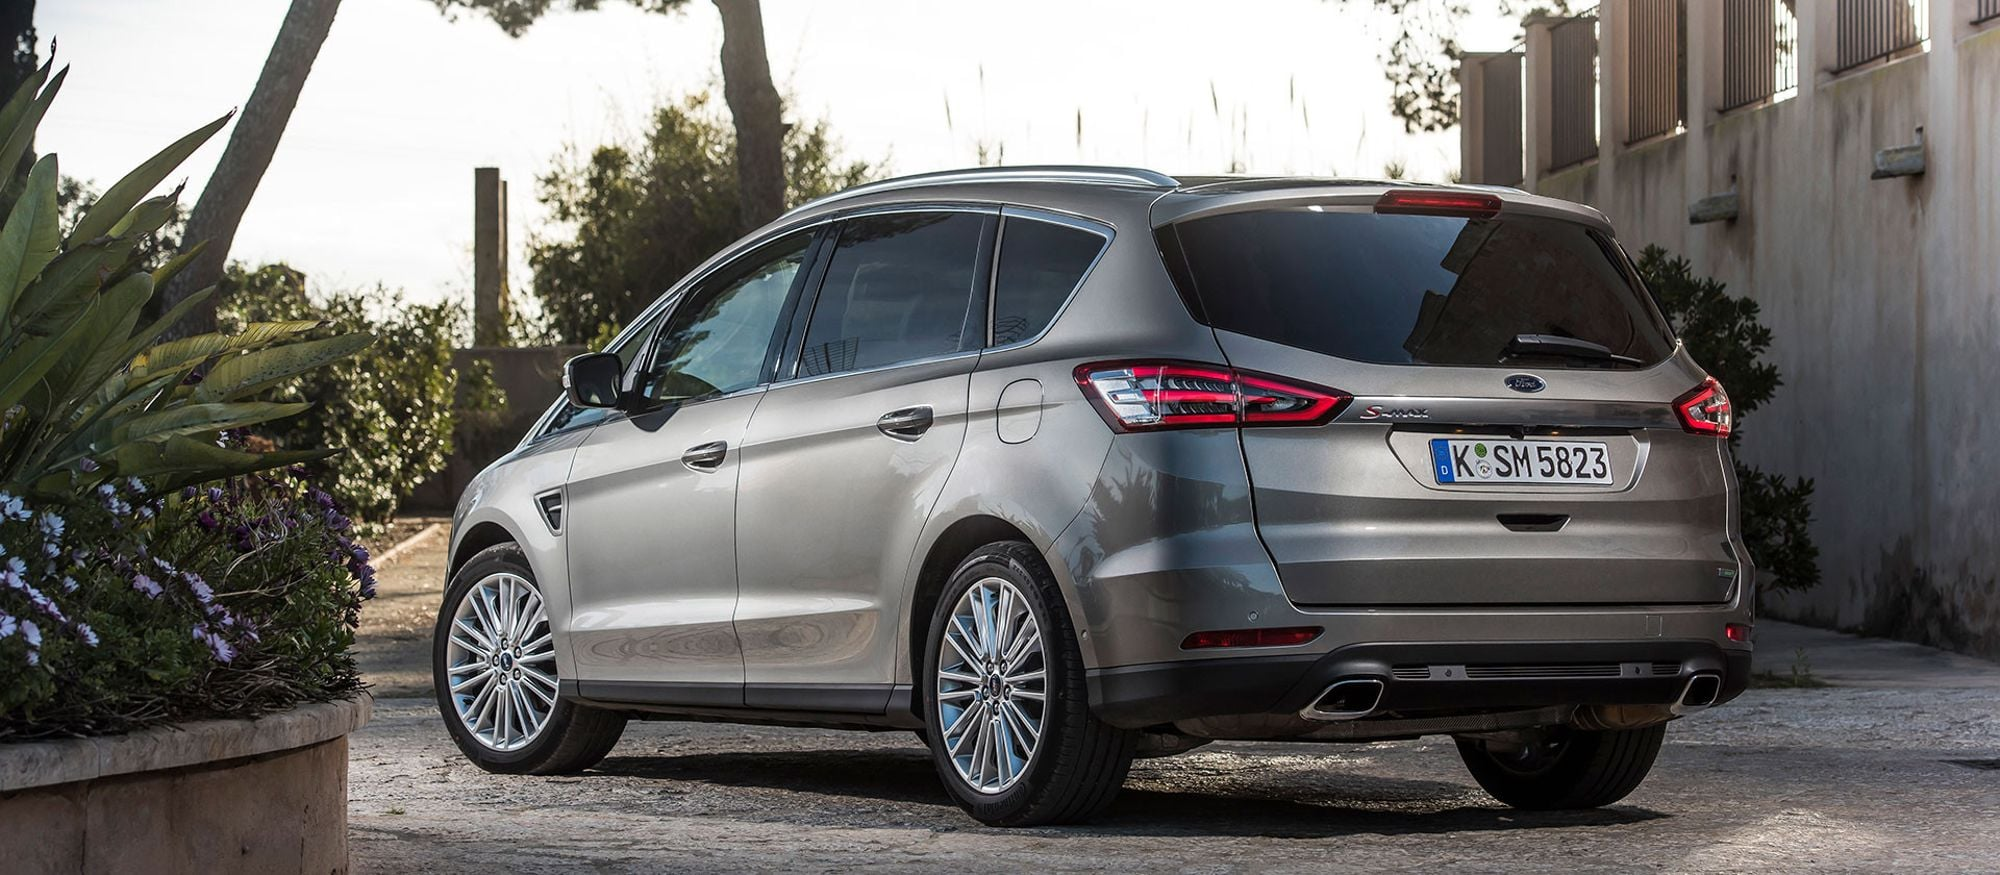 ford_s_max_02